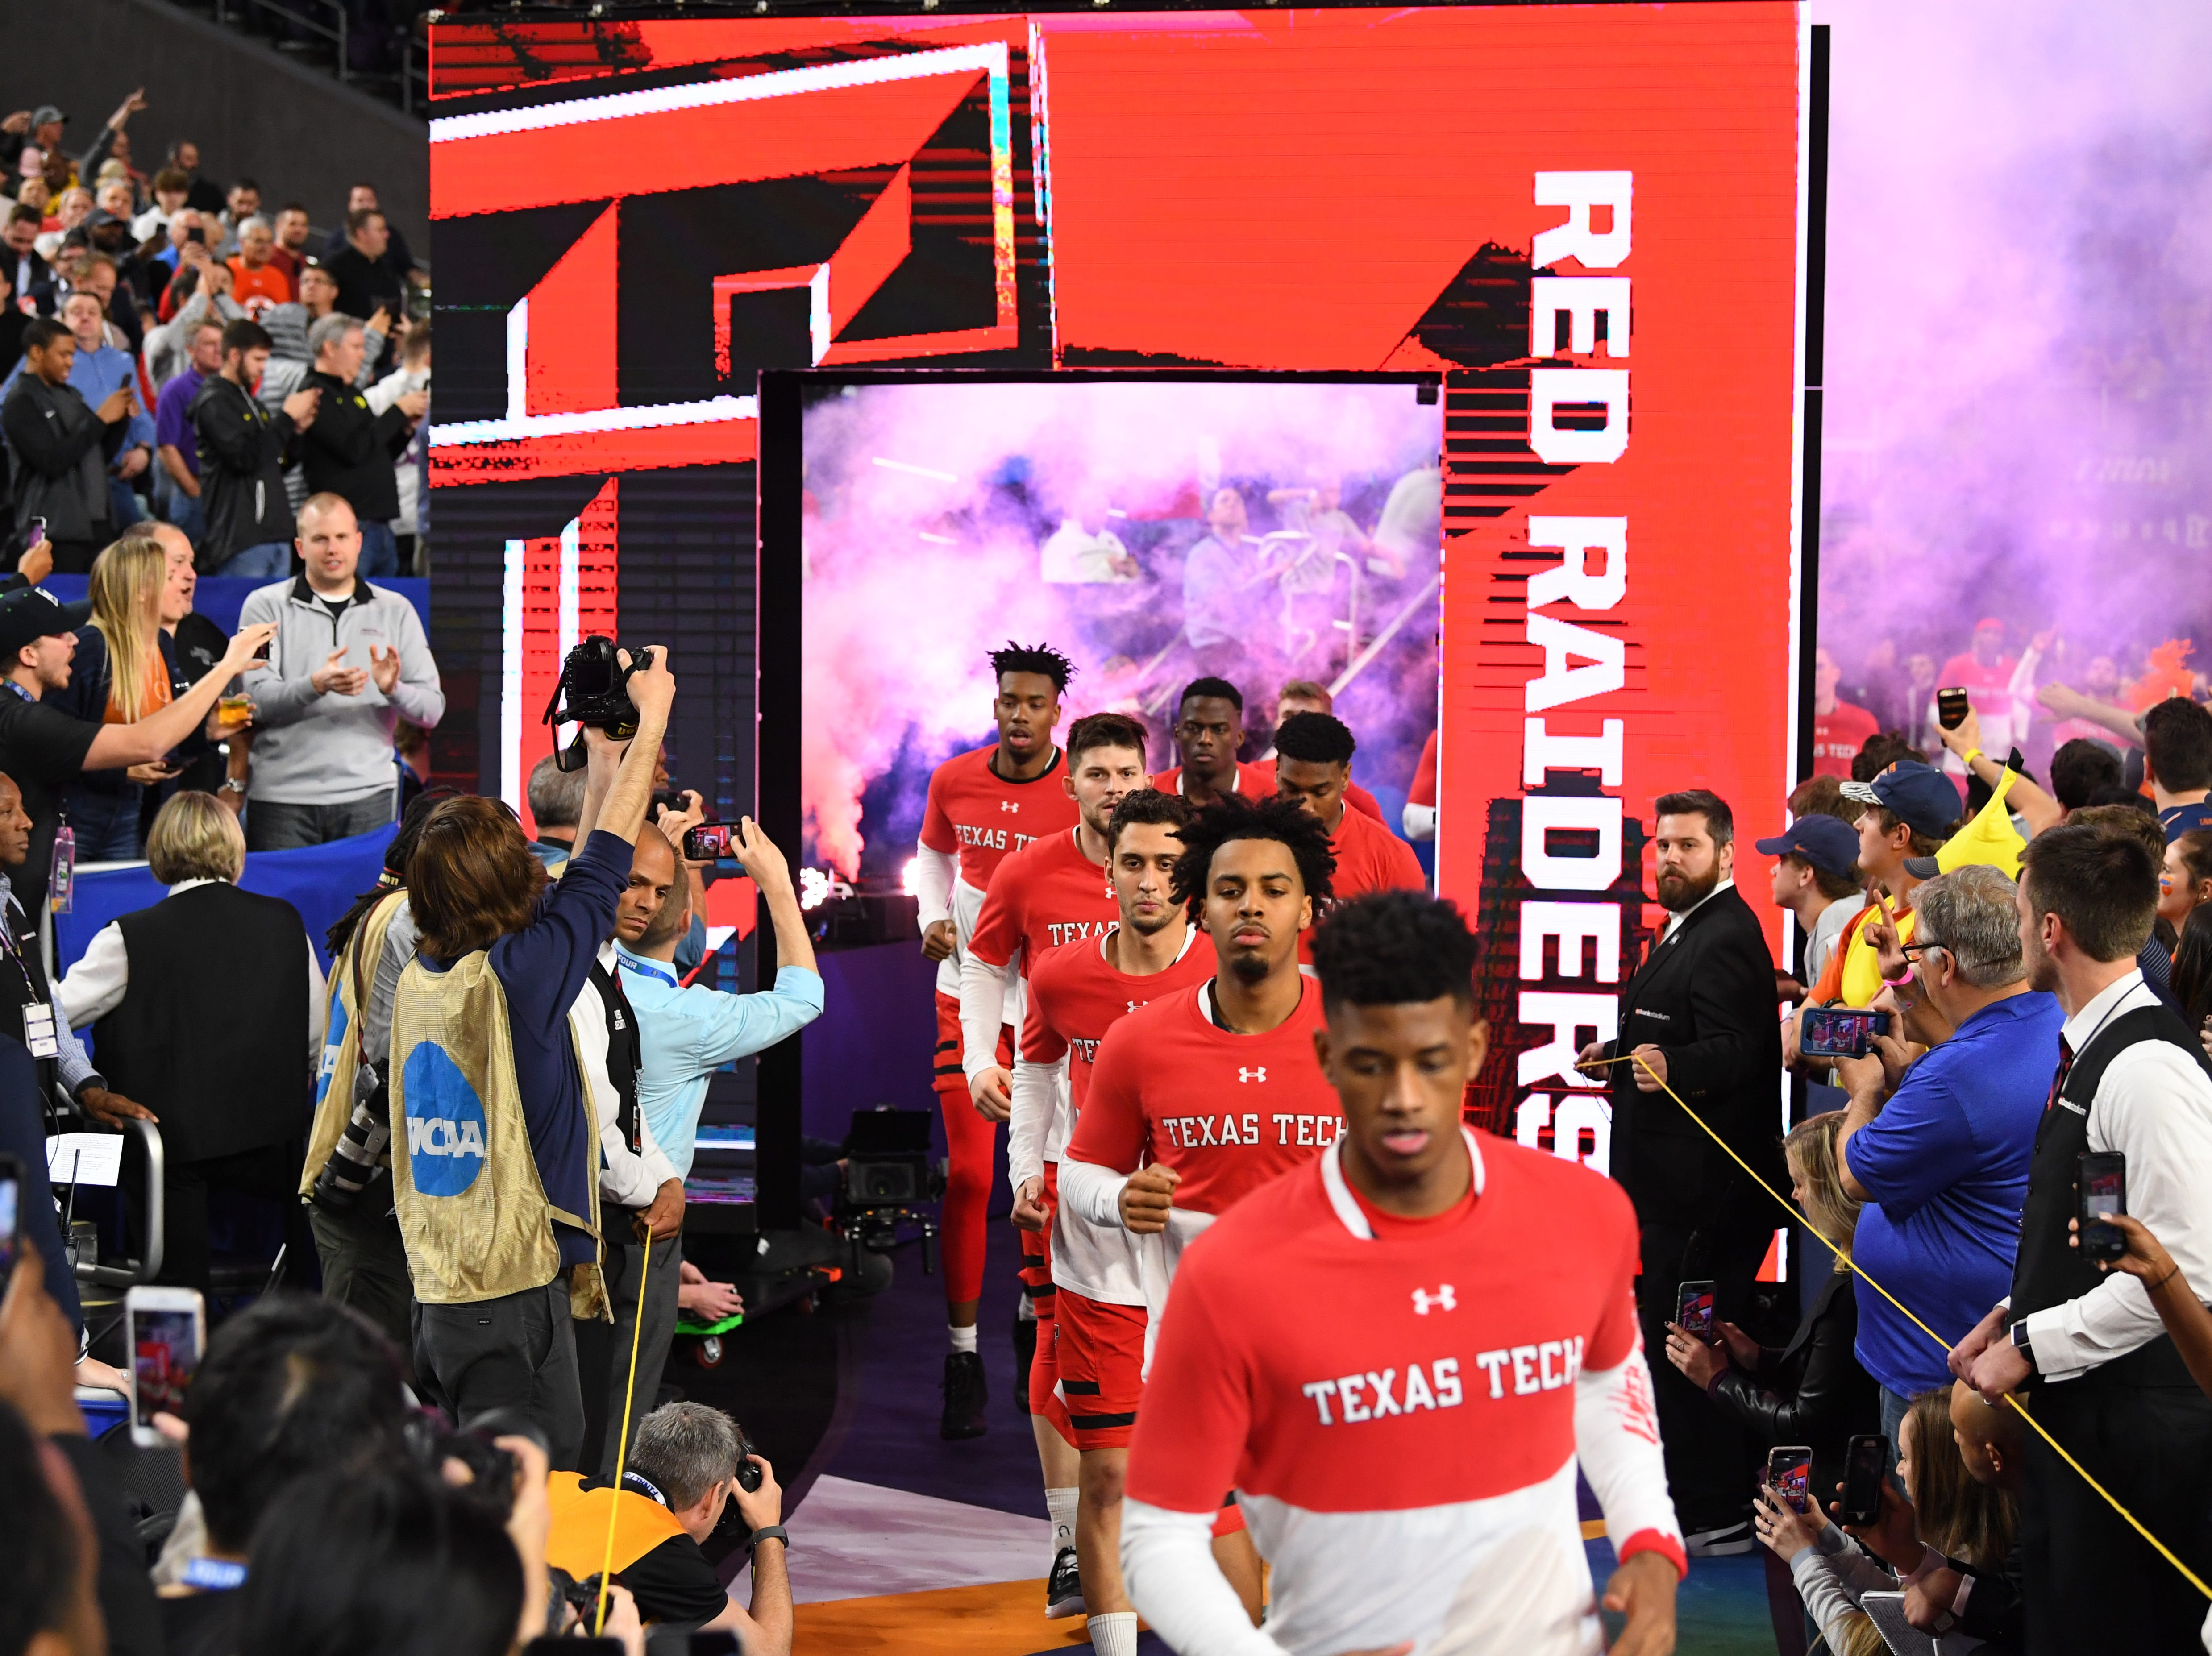 Apr 8, 2019; Minneapolis, MN, USA; Texas Tech Red Raiders take the floor prior to facing the Virginia Cavaliers in the championship game of the 2019 men's Final Four at US Bank Stadium. Mandatory Credit: Robert Deutsch-USA TODAY Sports